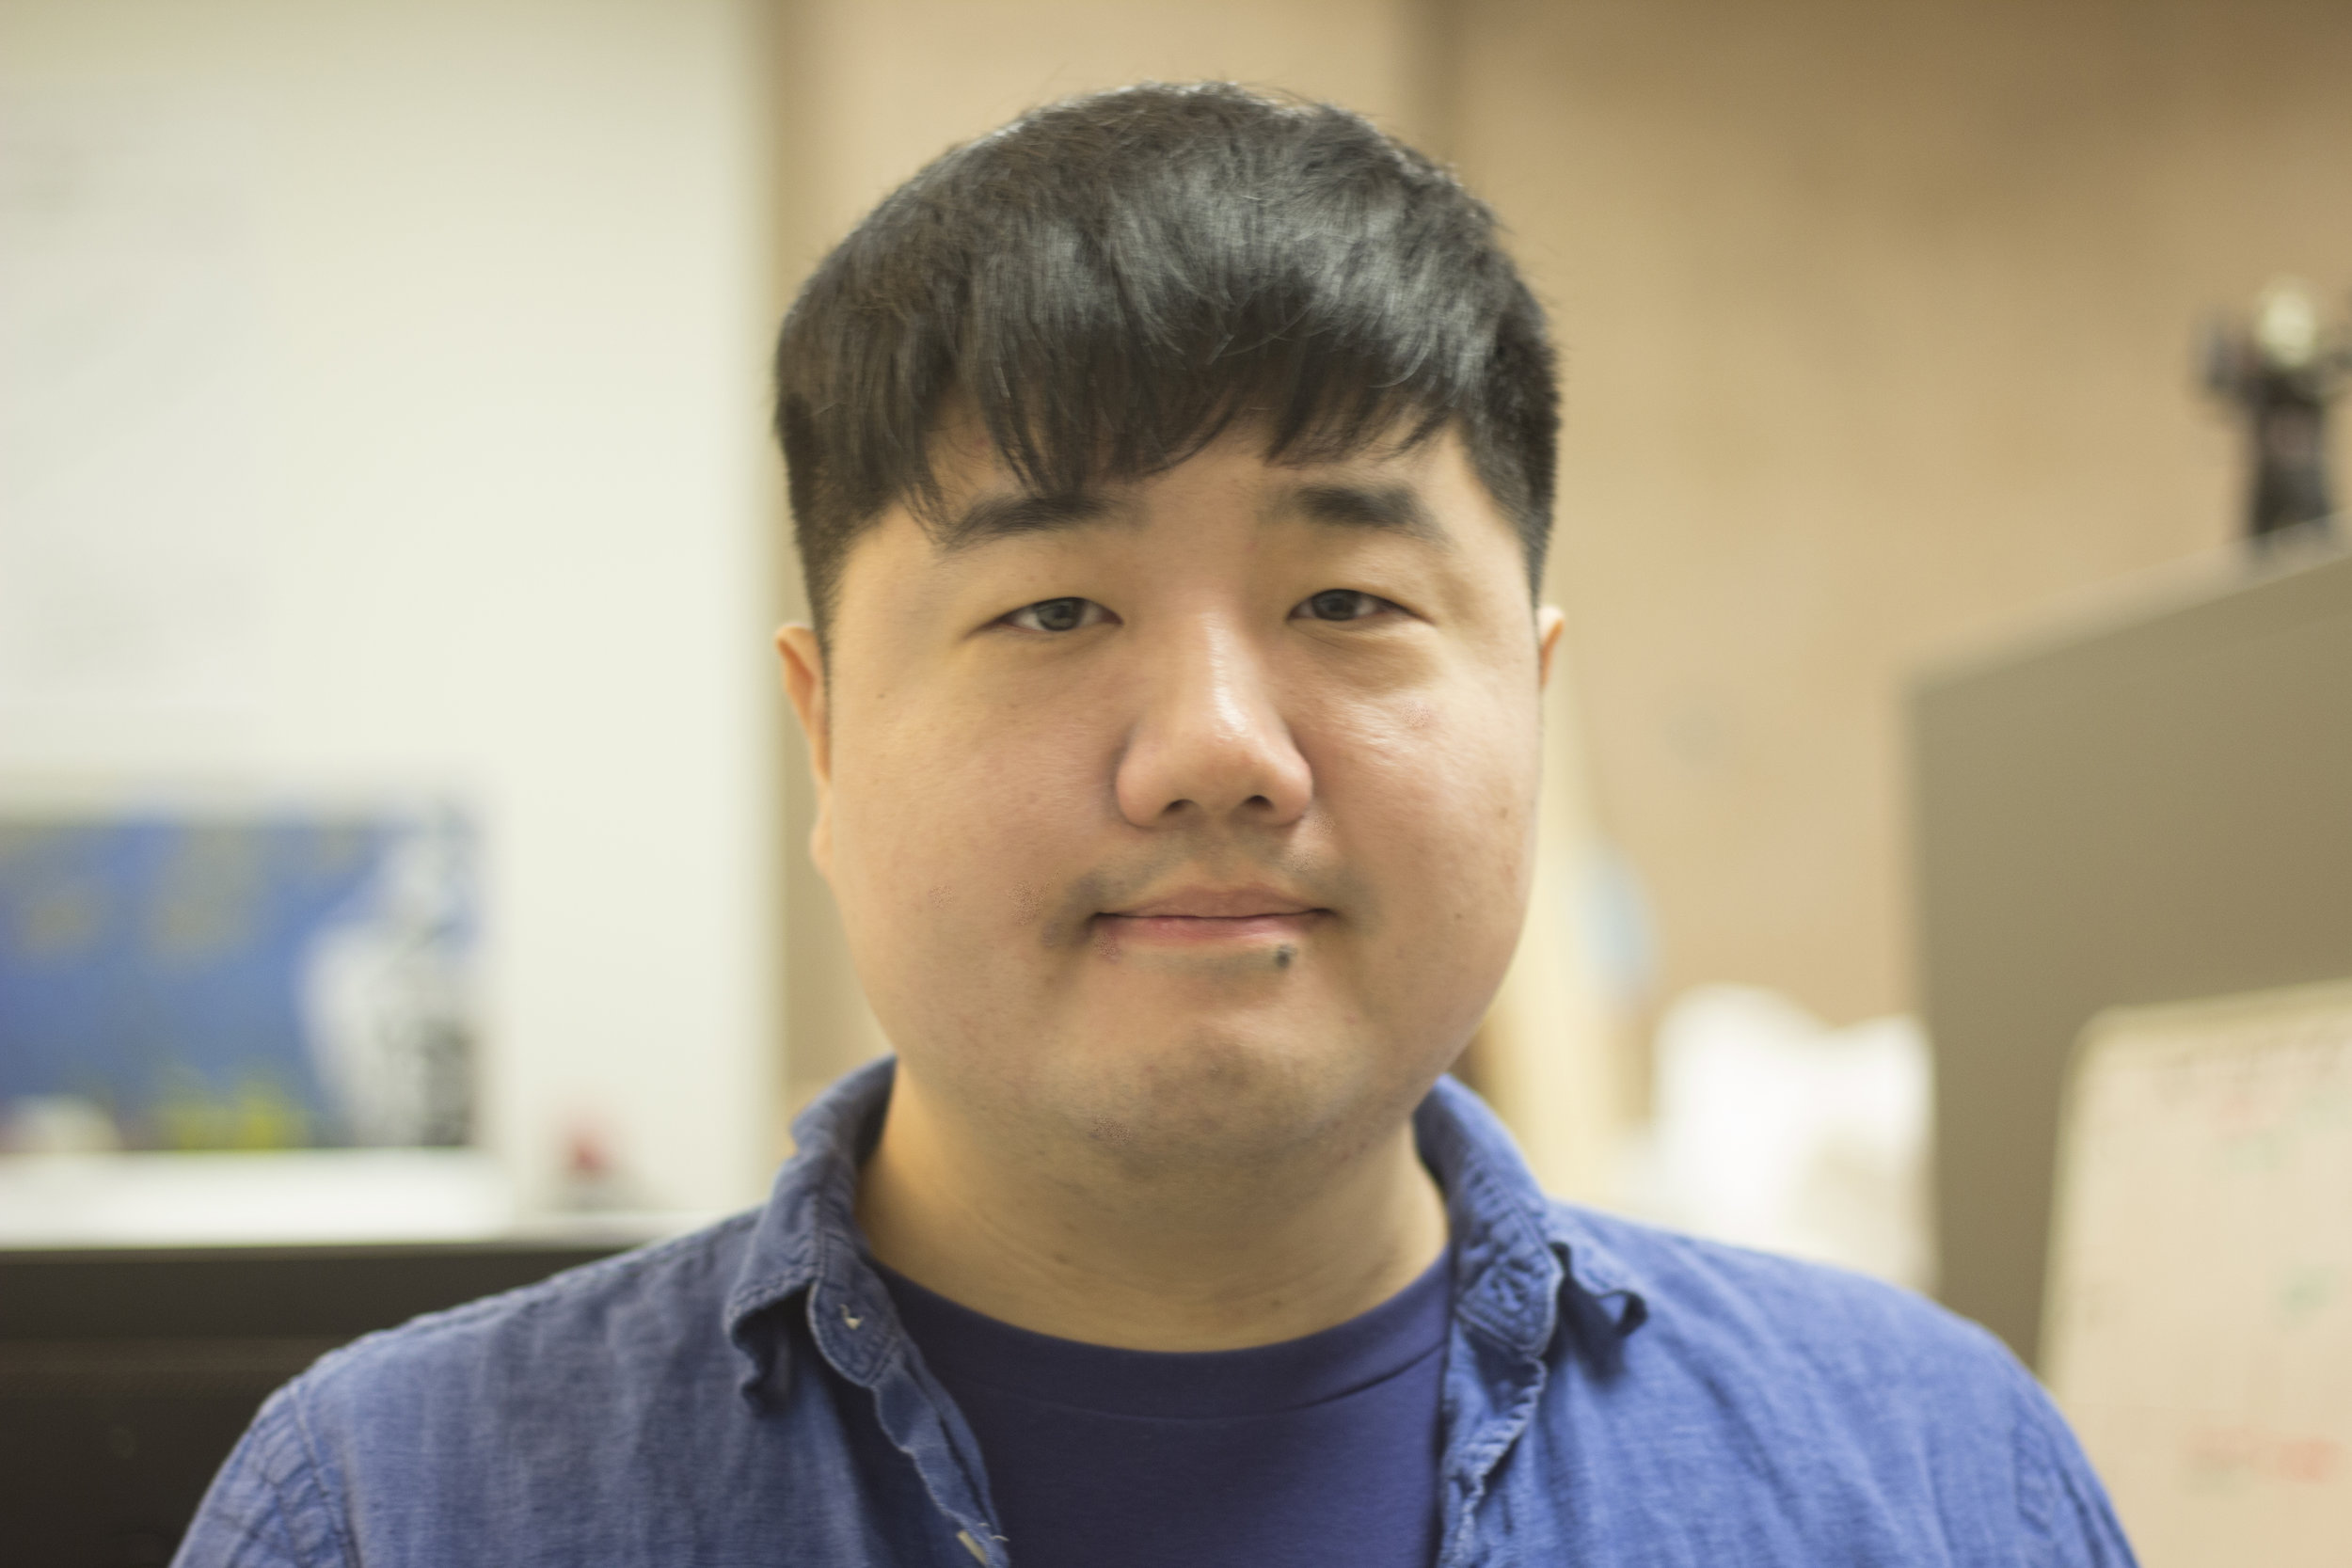 Je Seok Lee - Jeseok Lee is a Ph.D. student studying social behavior of esports game players. He investigates players' in-game behavior pattern and seeks for a connection to other aspects of their life. Currently, he is applying machine learning methods to analyze complicated patterns of collaborative behavior when people play cooperative games.jesl@uci.edu